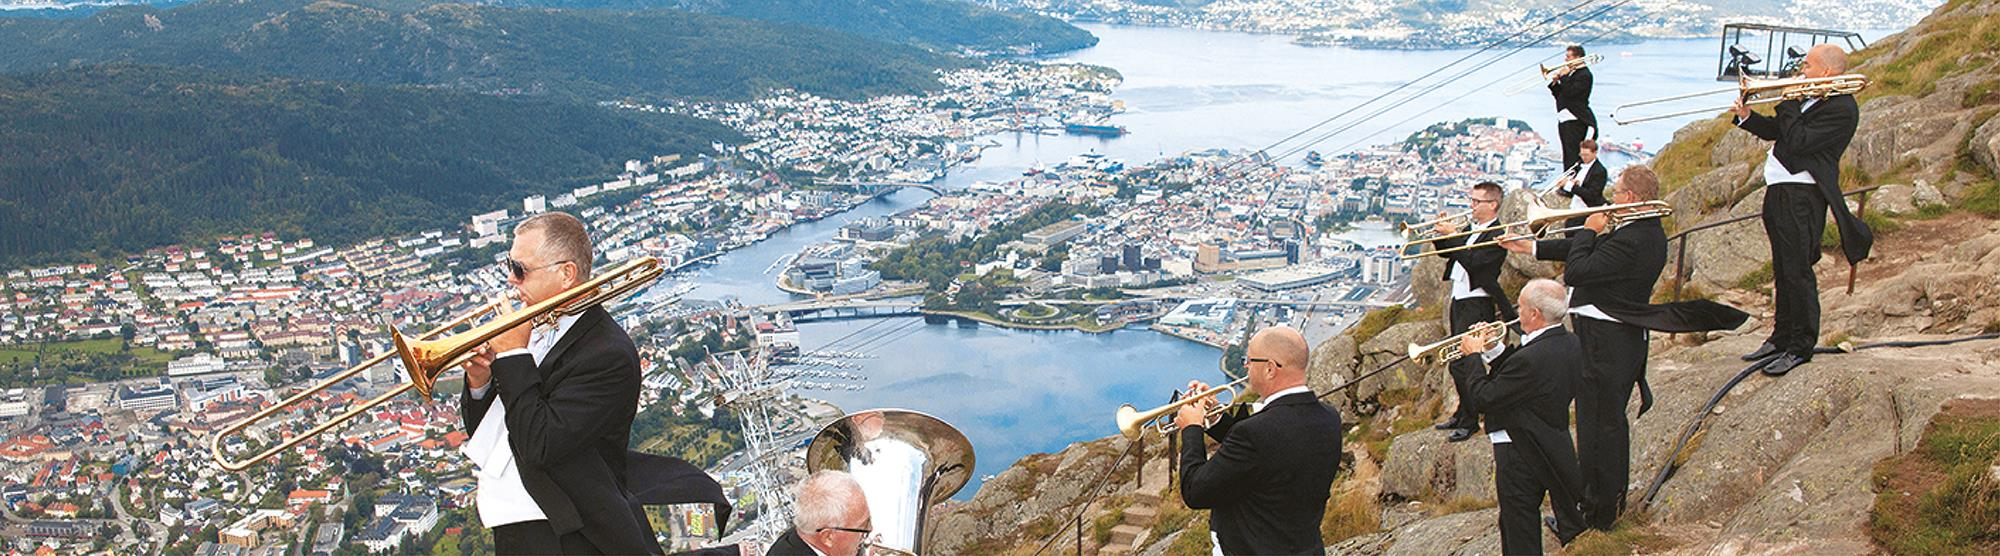 Bergen Tourist Ideas  amp  Inspiration   VisitBergen com A European City of Culture